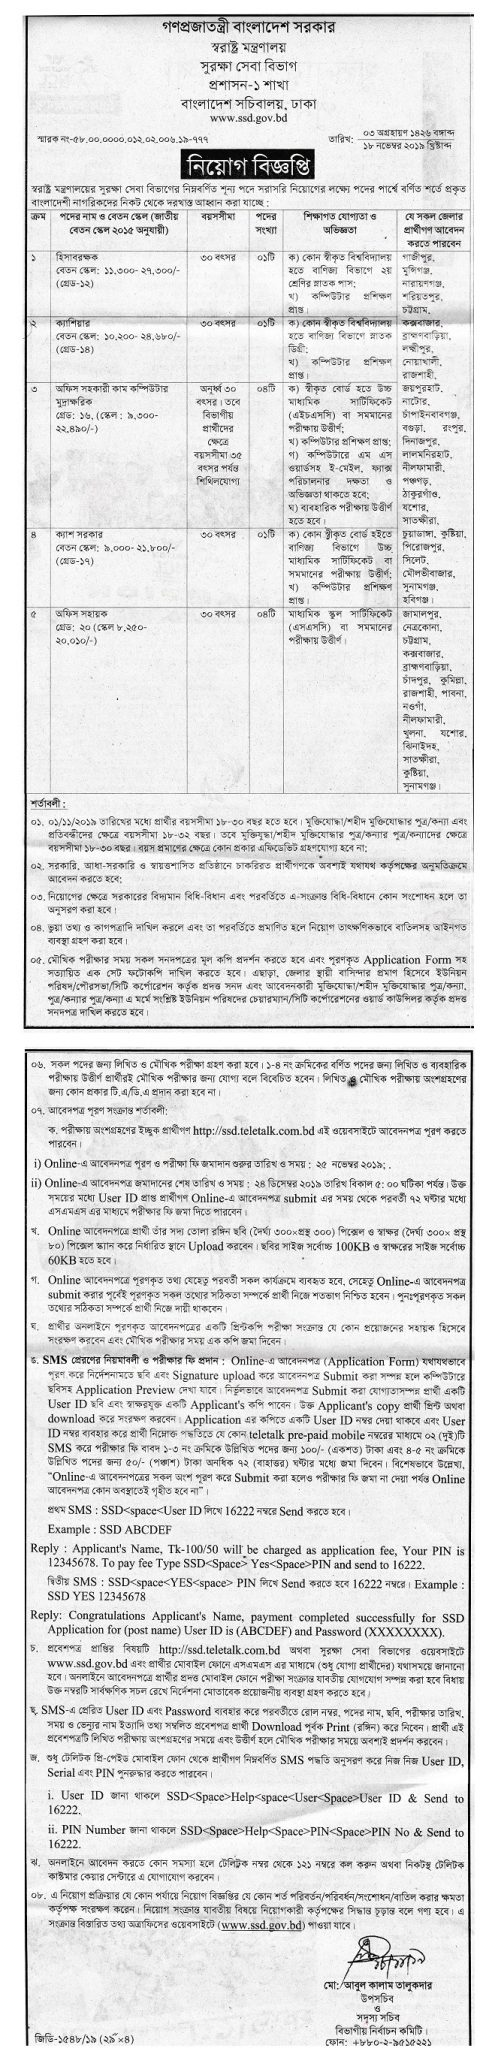 Ministry of Home Affairs Job Circular 2019